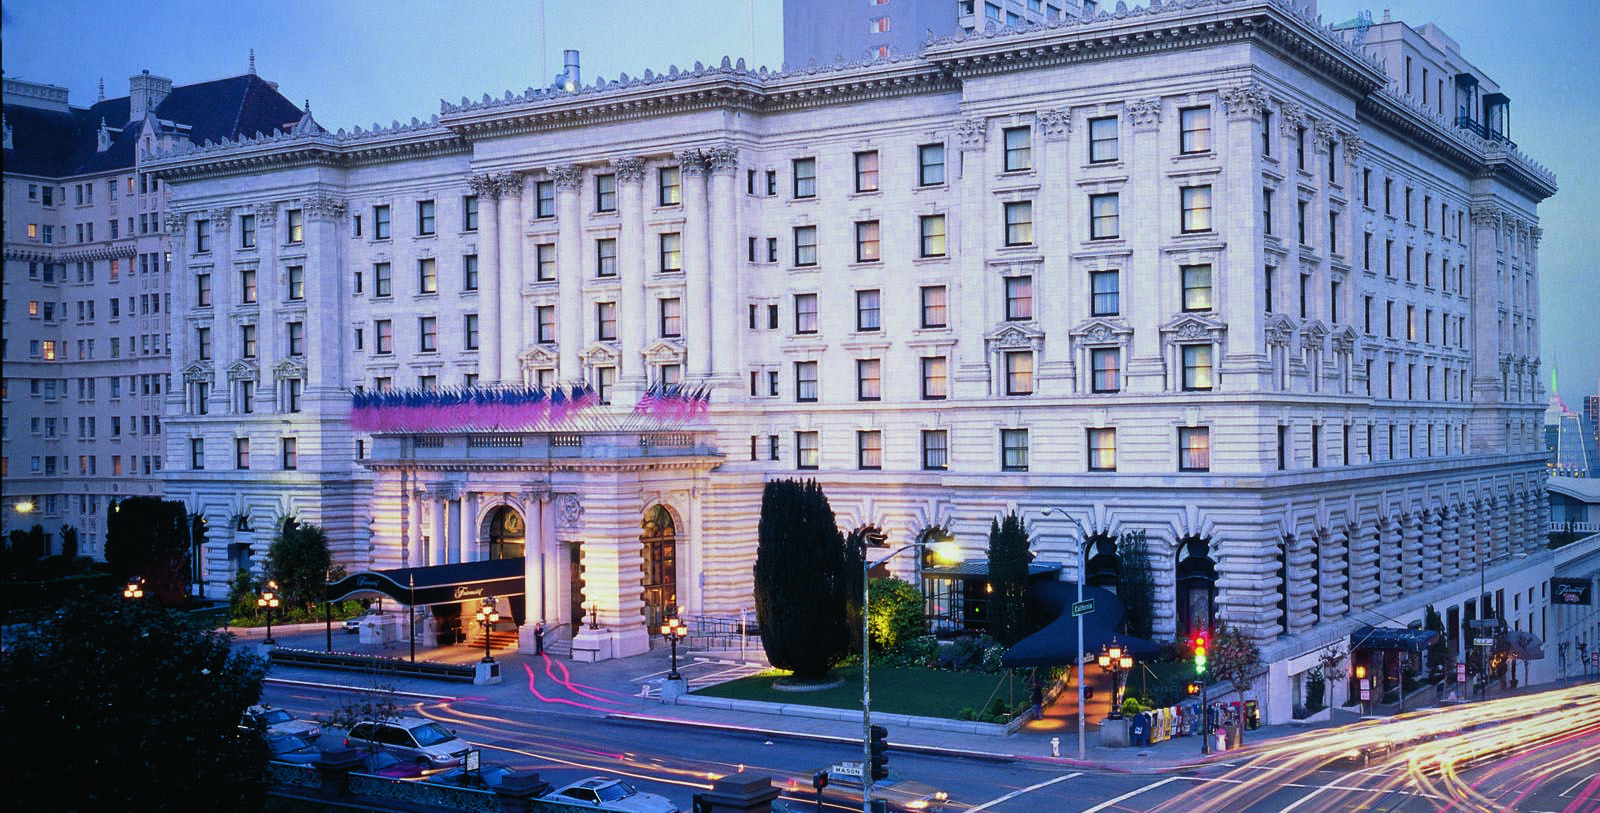 Image of Dining on Balcony with San Francisco skyline Hotel Exterior The Fairmont Hotel San Francisco, 1907, Member of Historic Hotels of America, in San Francisco, California, Explore